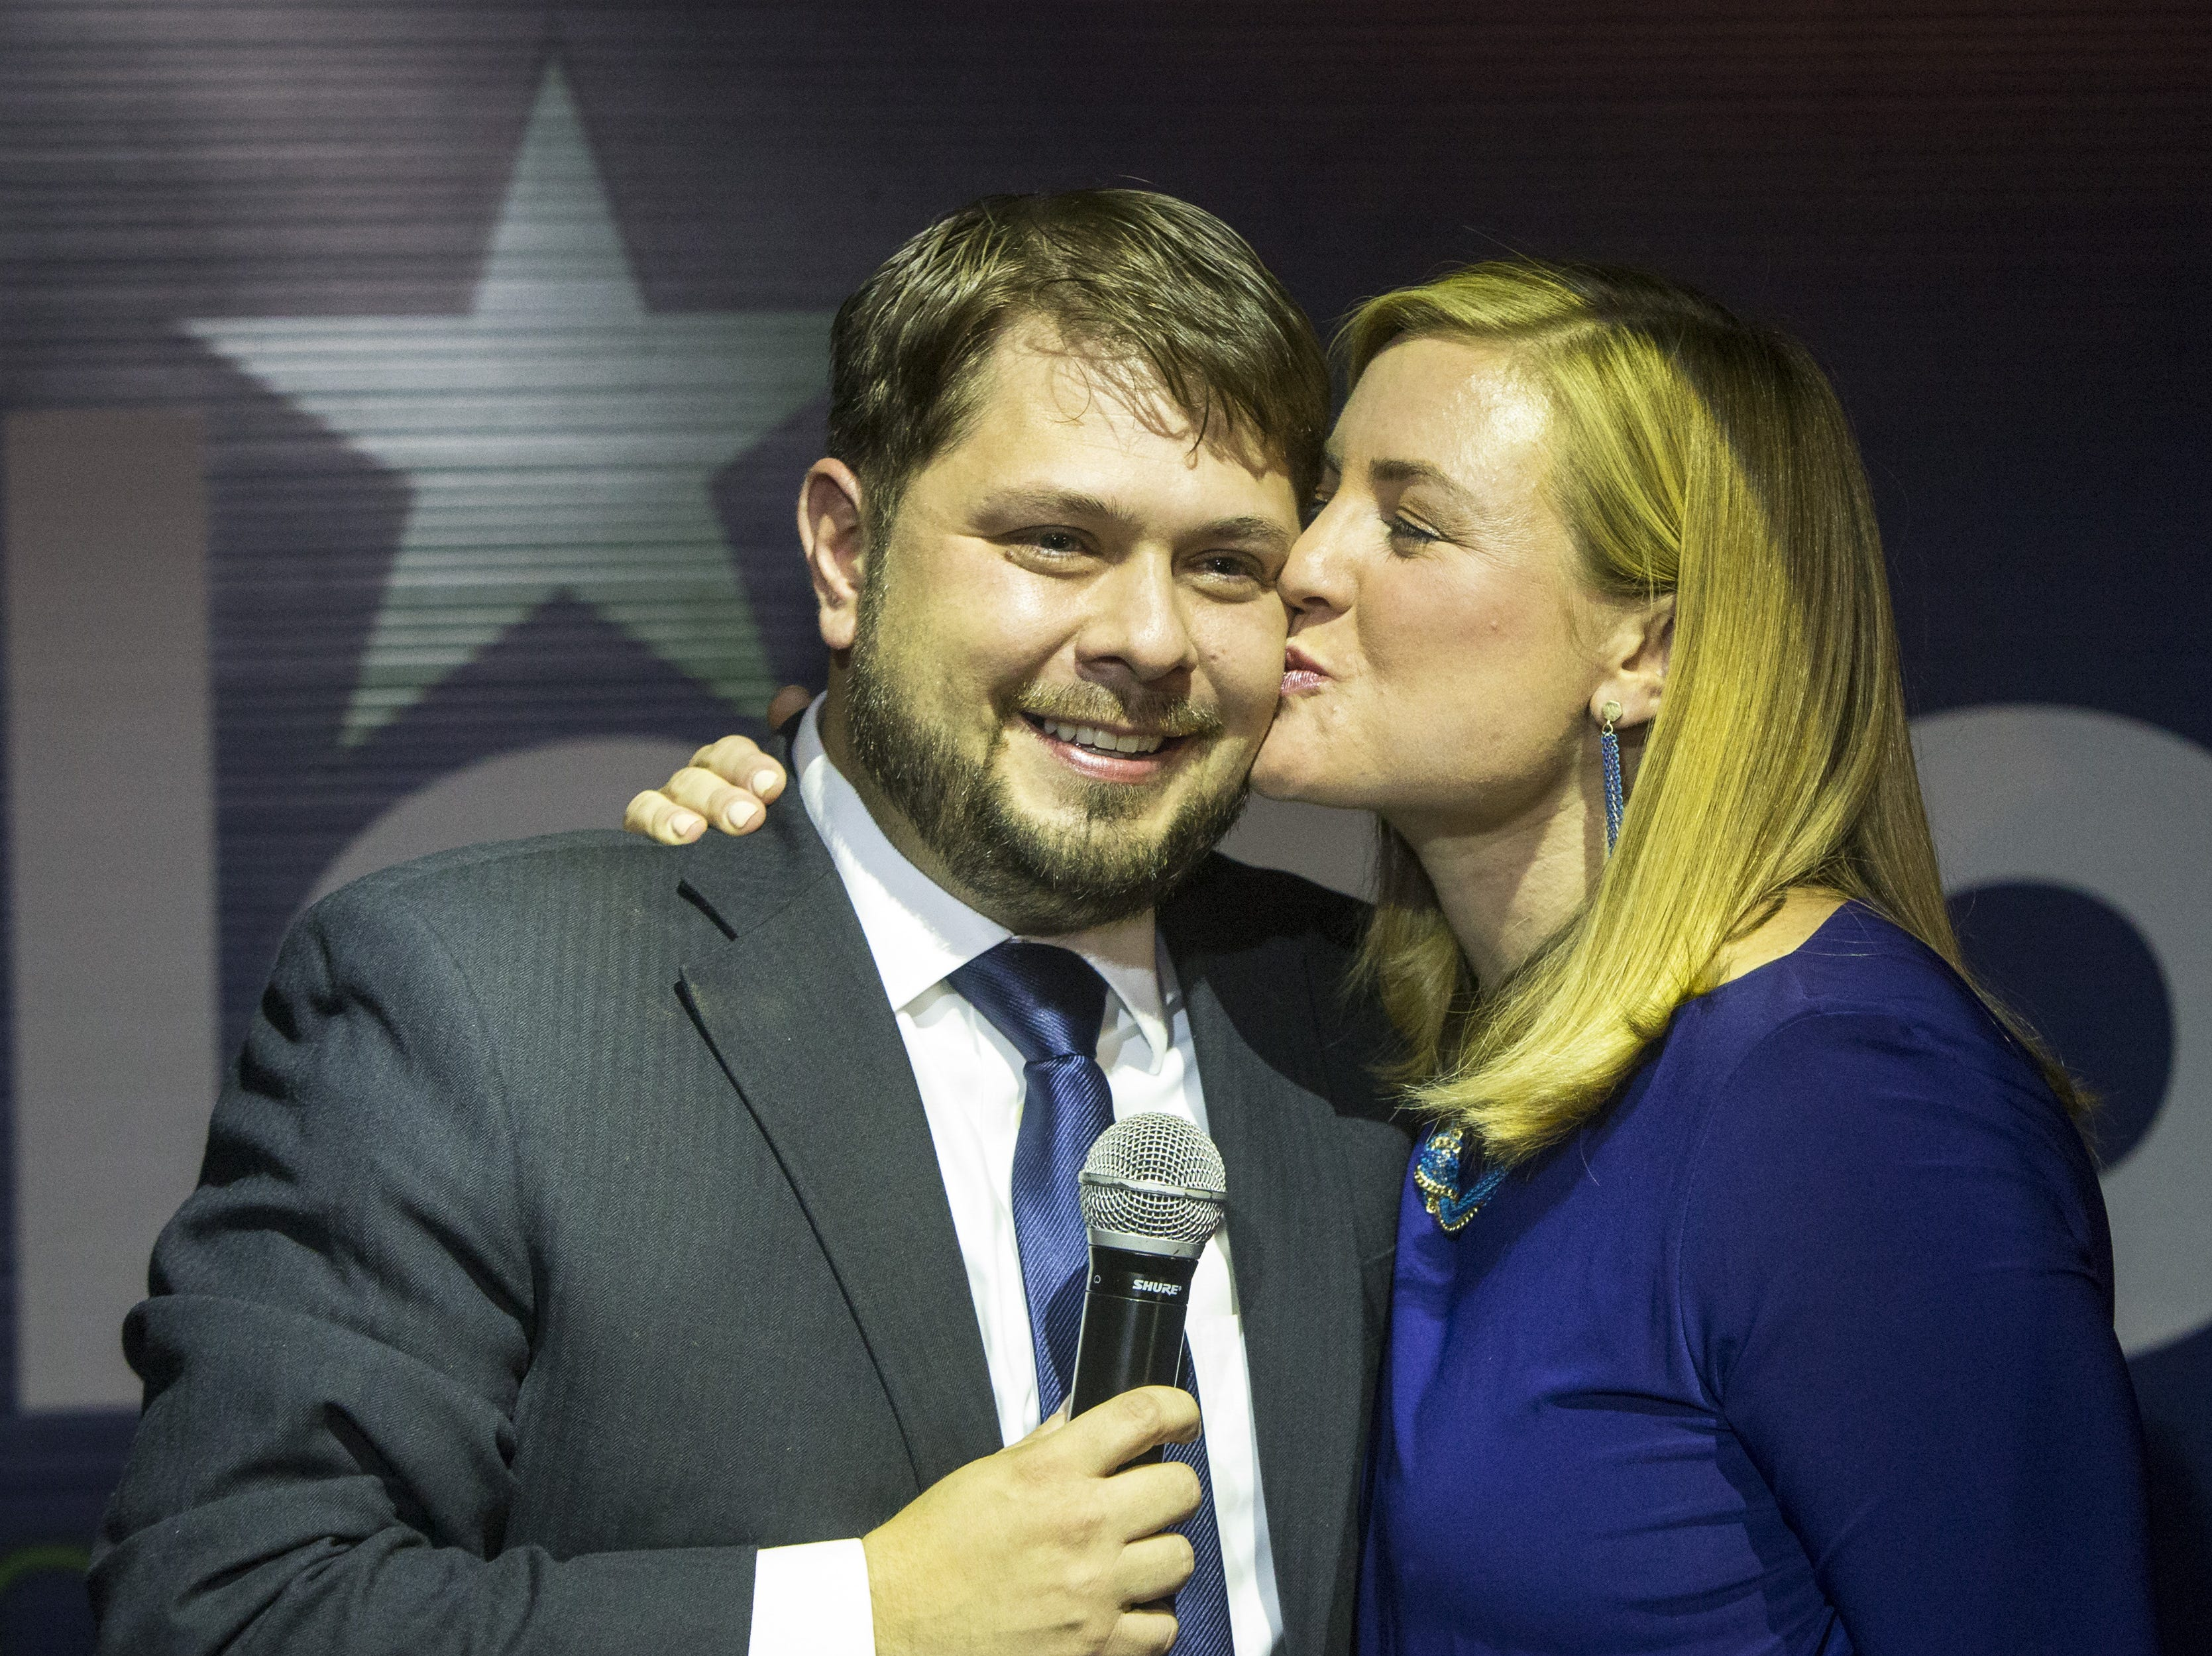 Charlie Leight/The Republic Democrat Ruben Gallego gets a congratulatory kiss from his wife, Phoenix City Councilwoman Kate Gallego, at his election-night victory party at Club Downtown in Phoenix. Gallego?s main rival, Mary Rose Wilcox, conceded shortly before 9 p.m. He would become the first Iraq War veteran to go to Congress from Arizona if he wins the general election in the overwhelmingly blue district. Democrat Ruben Gallego gets a congratulatory kiss from his wife, Phoenix City Council woman Kate Gallego, at his election night victory party at Club Downtown, in Phoenix, Tuesday, Aug. 26, 2014. Gallego is running in the primary against Mary Rose Wilcox, for the 7th District to replace retiring U.S. Rep. Ed Pastor.